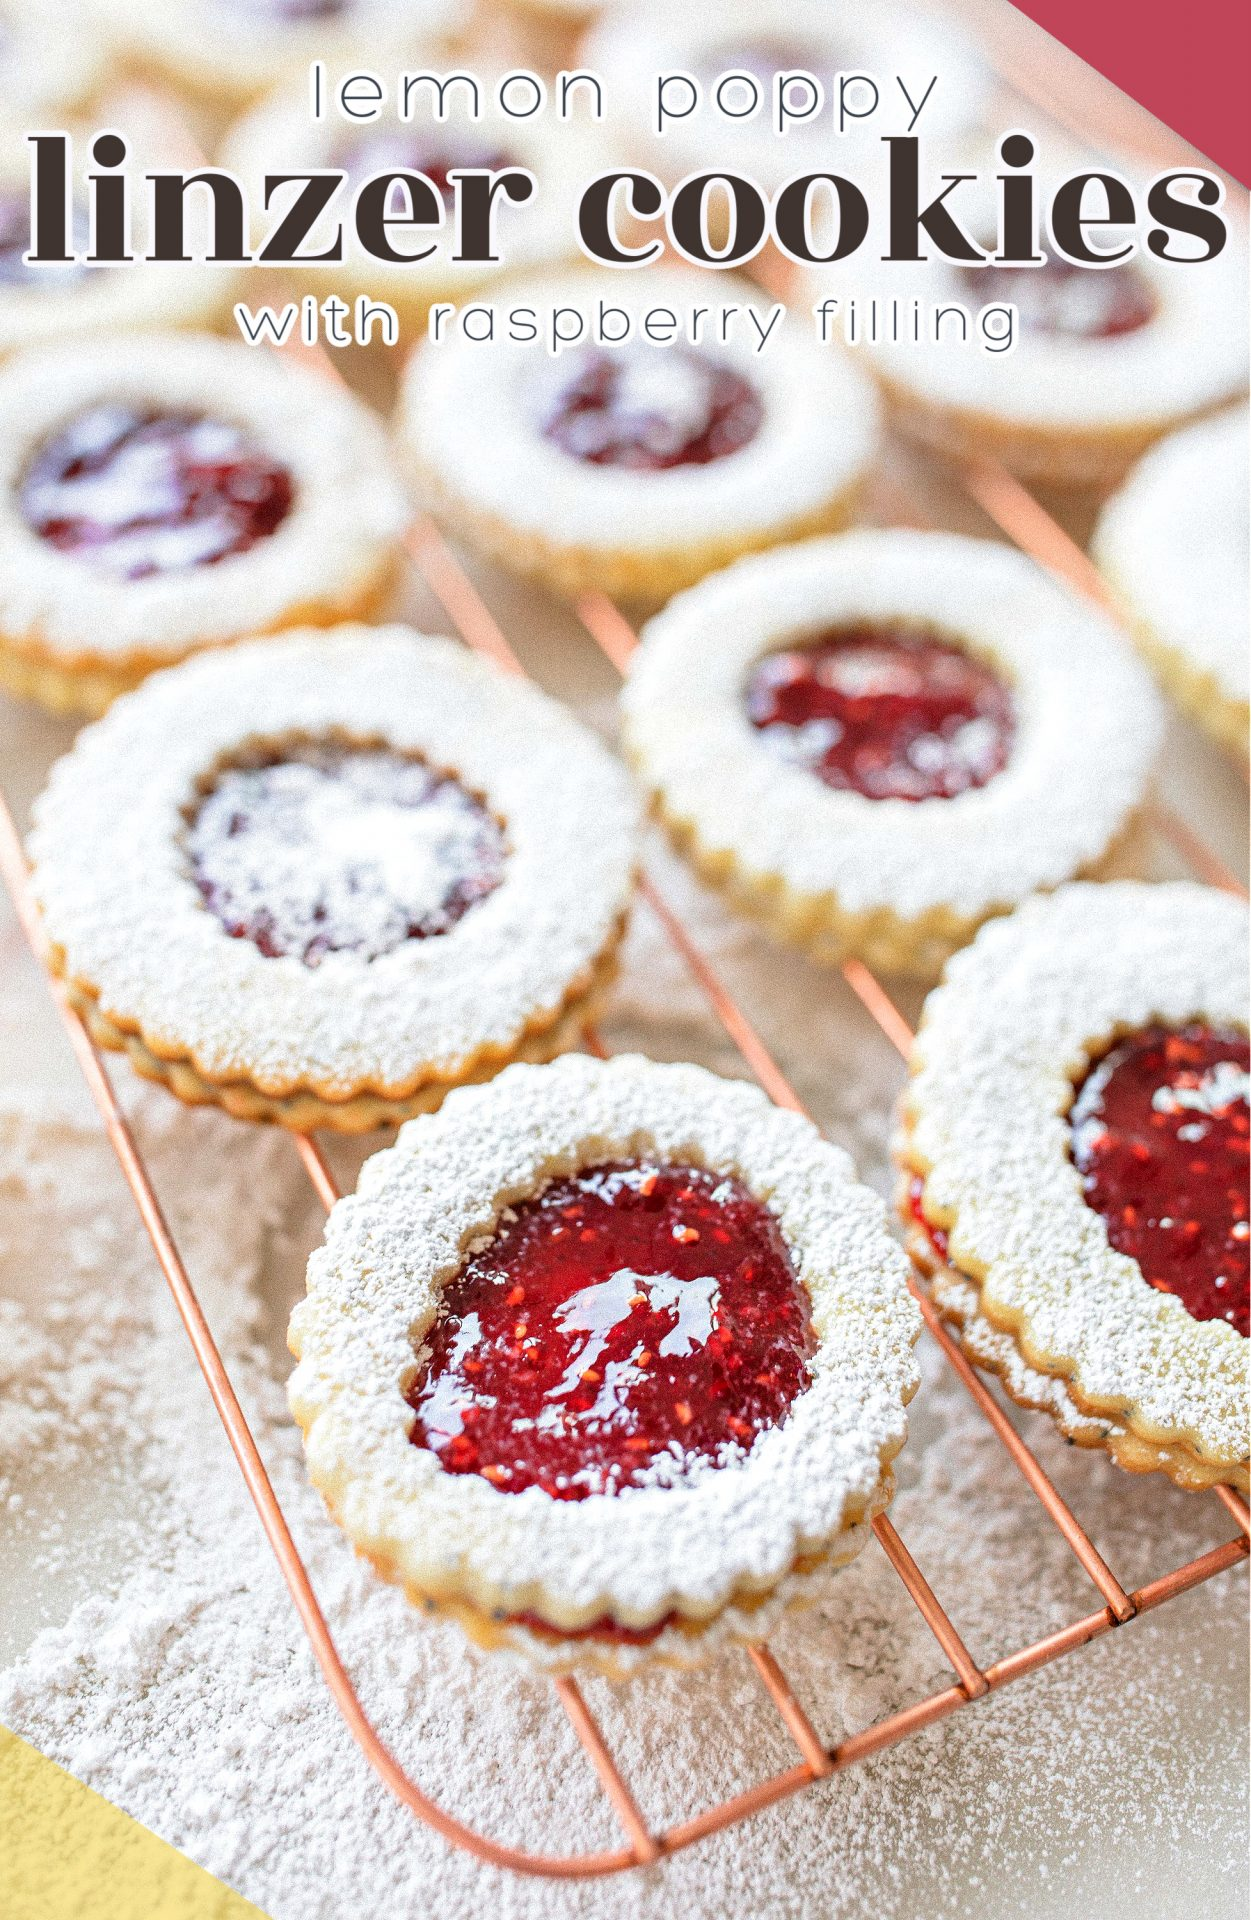 lemon poppy seed, lemon linzer cookies, shortbread cookies, vegan, dairy-free, lemon shortbread cookies, baking, jam, raspberry, jelly